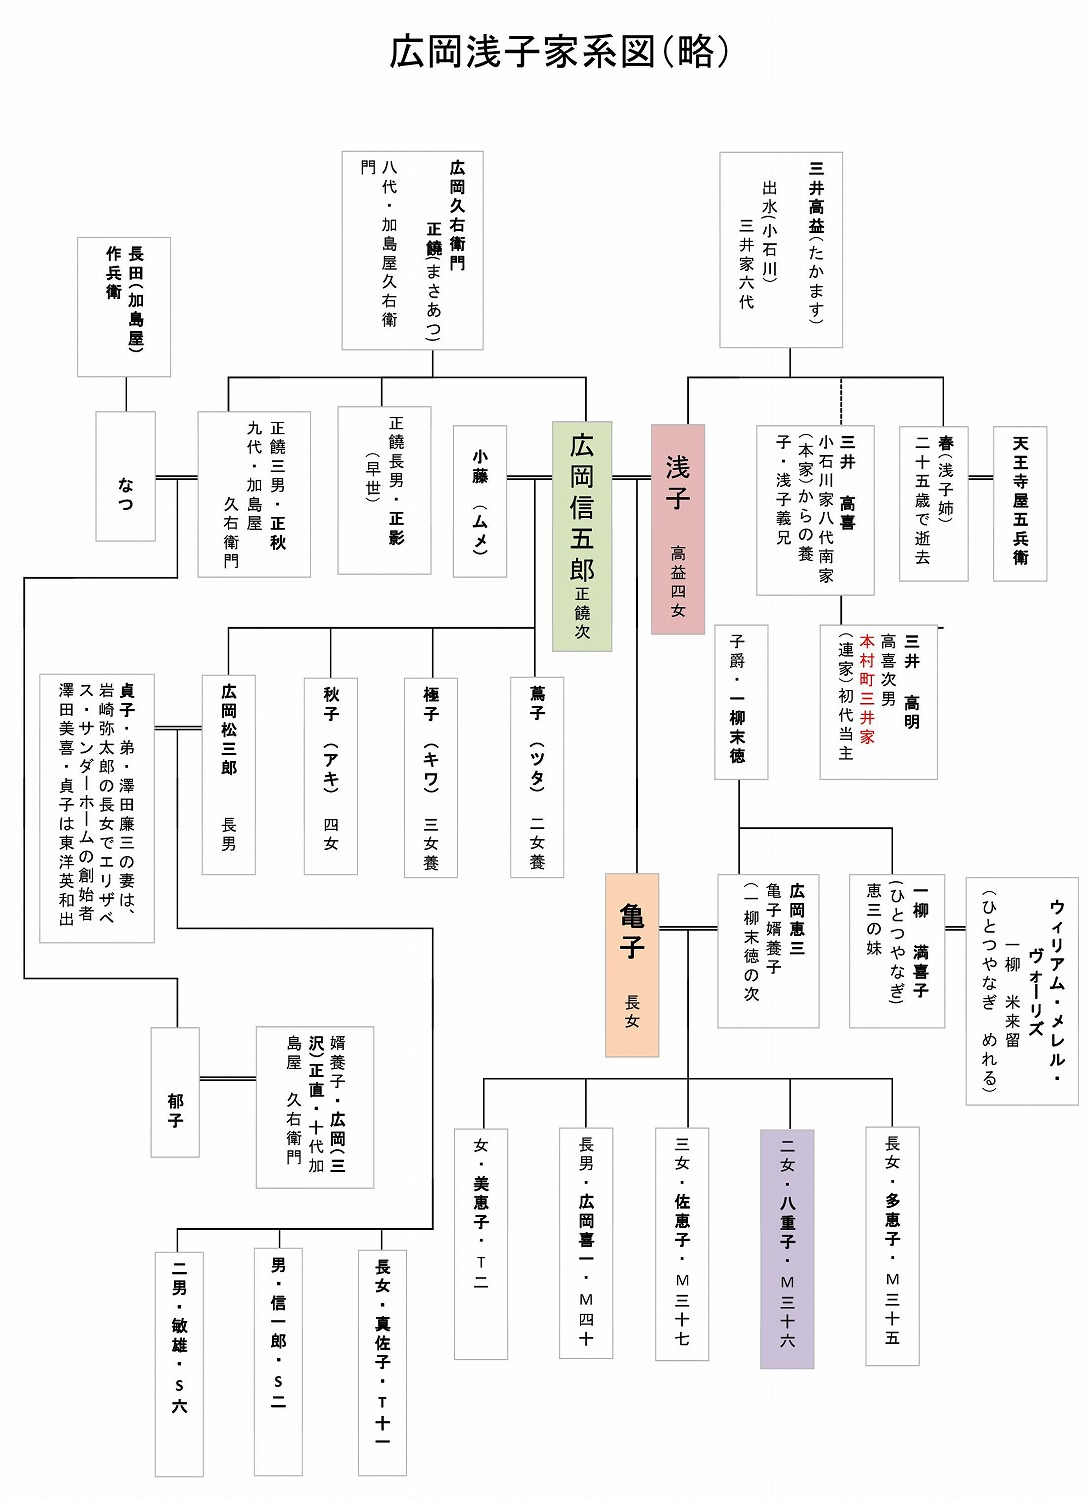 Family tree of Asako Hirooka